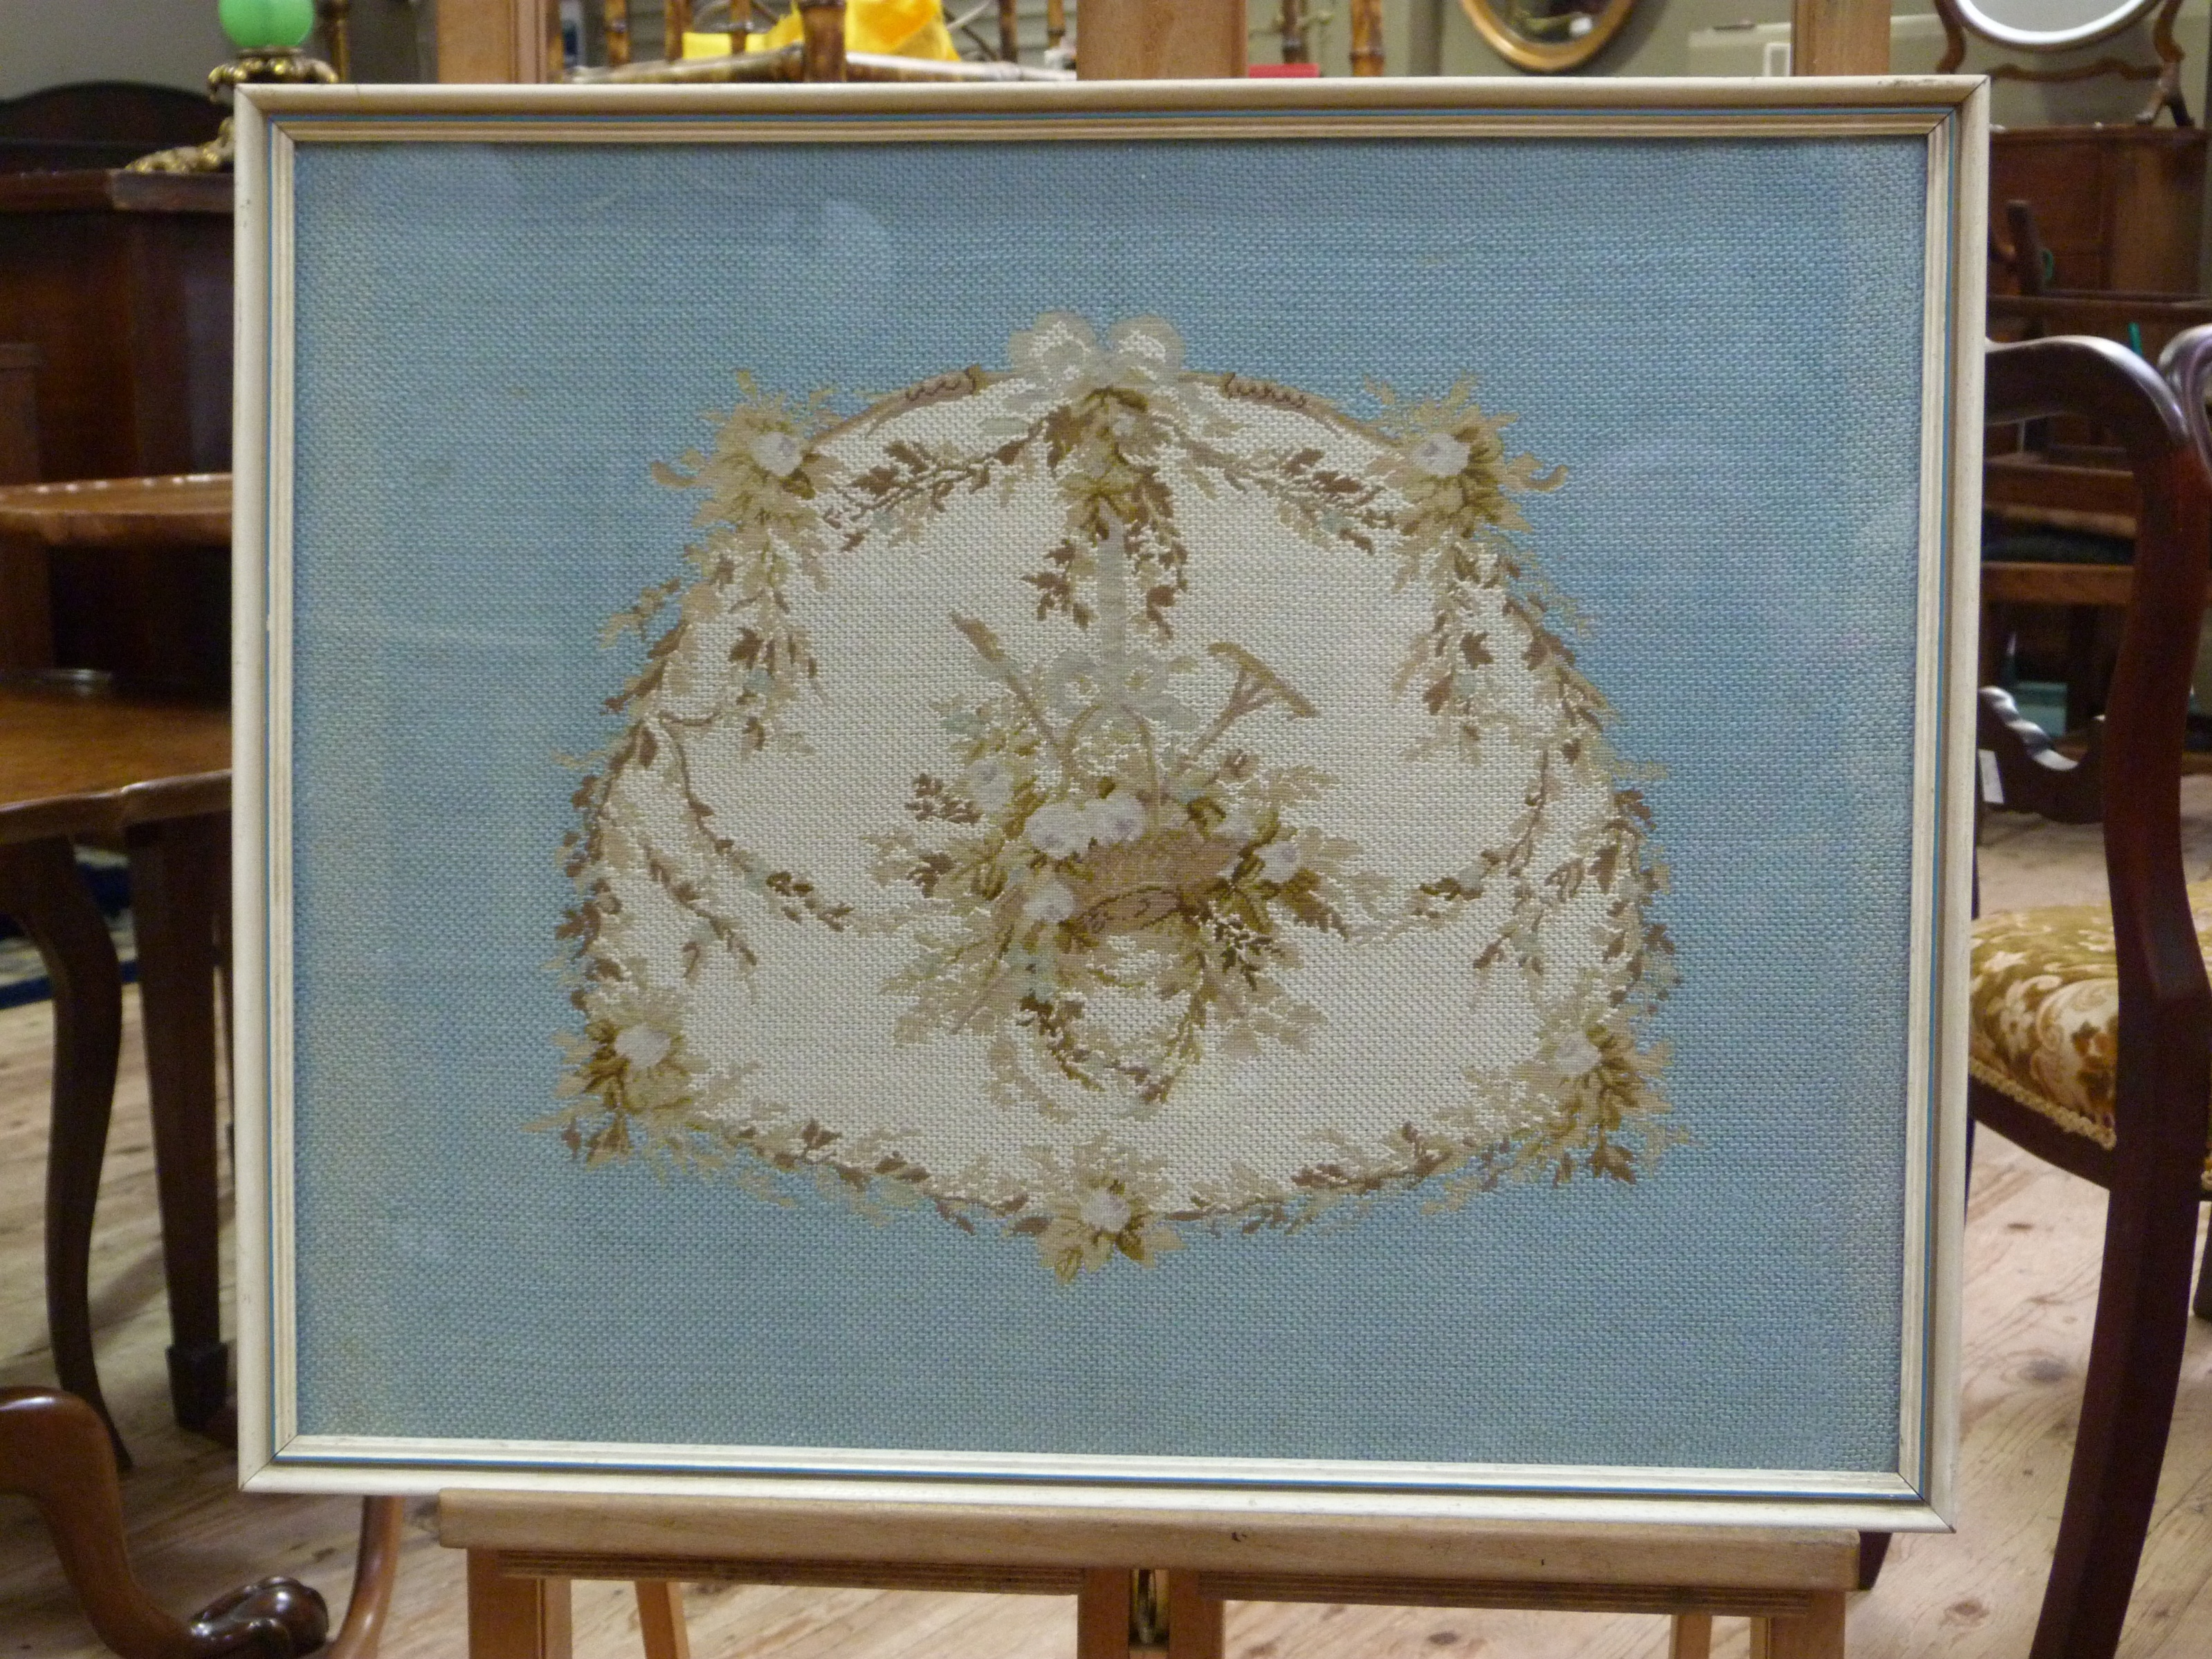 Lot 224 - An early 20th century needlework panel depicting a basket of flowers, rake and hoe within a